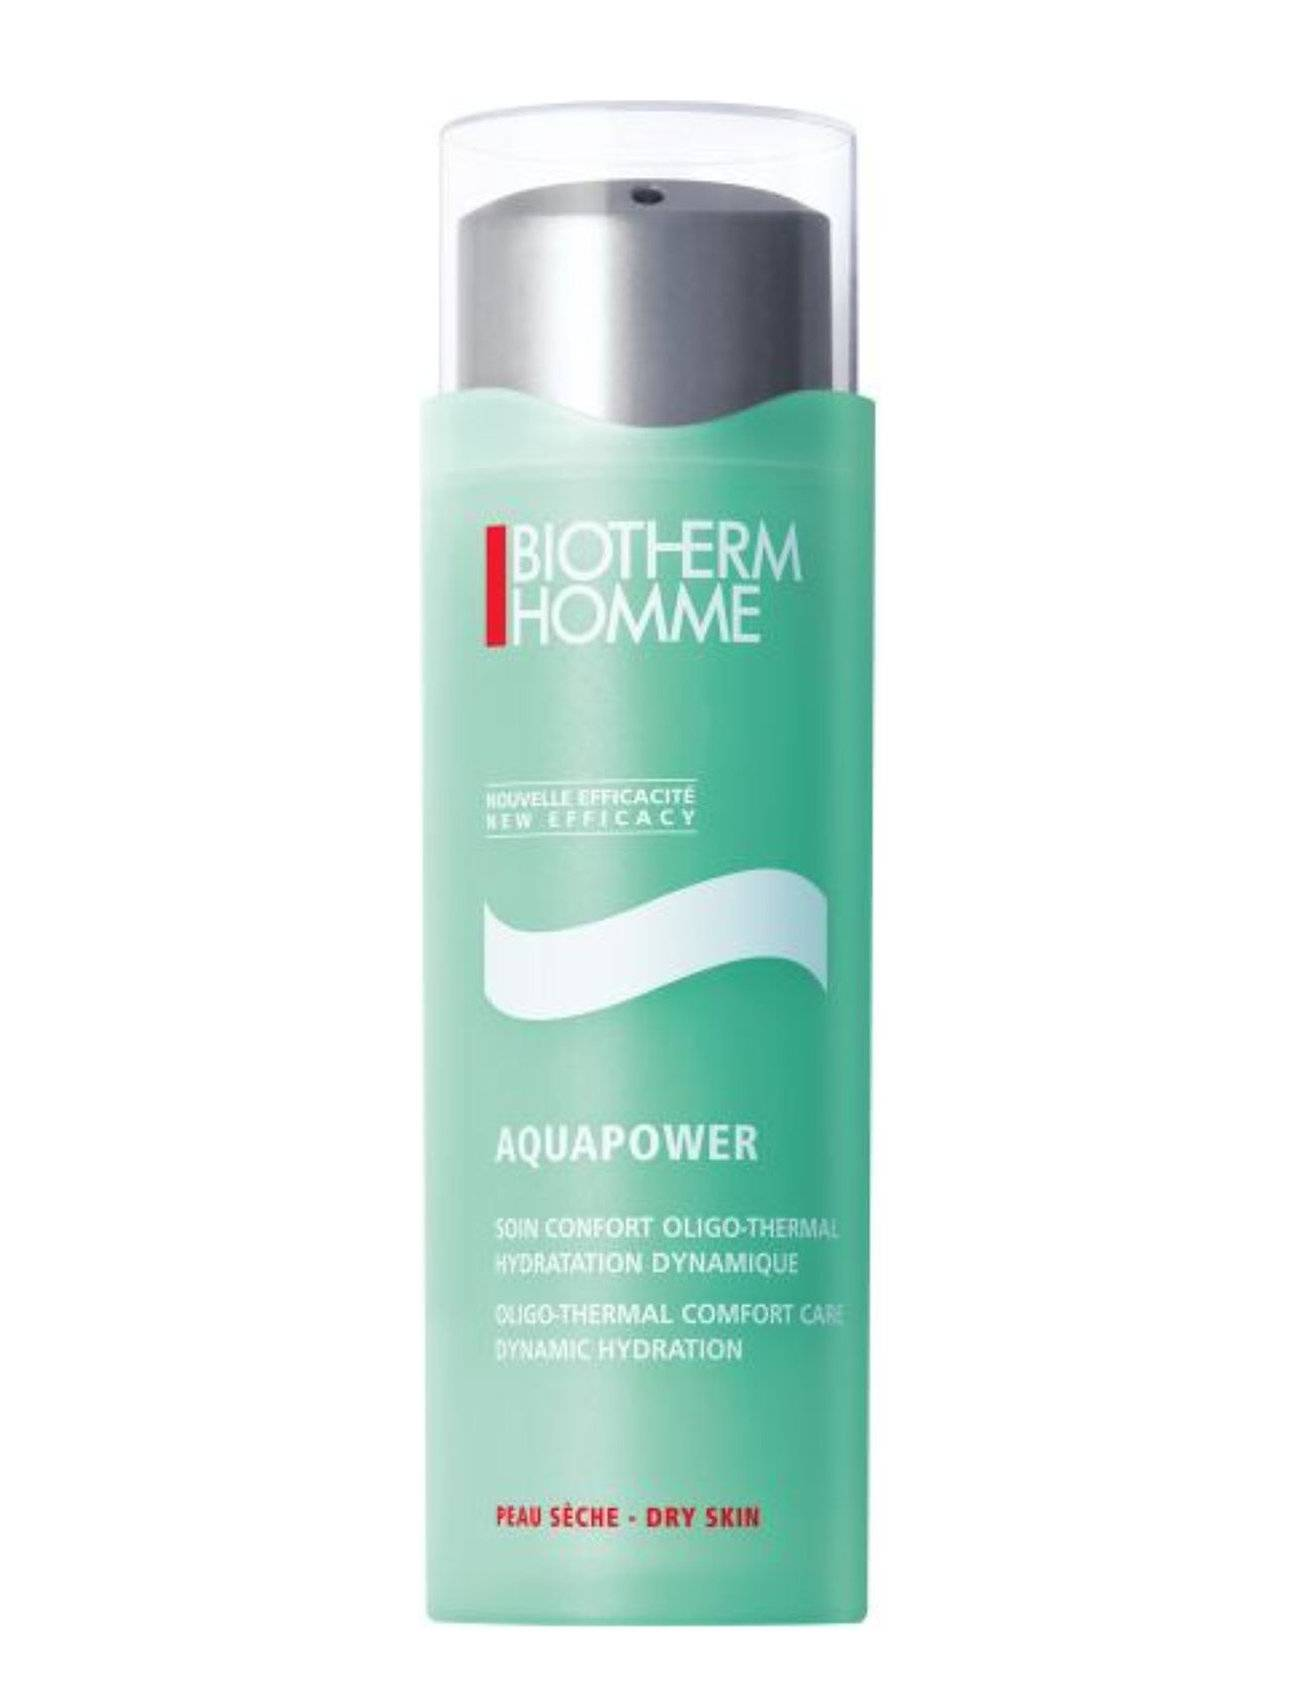 Biotherm Homme Aquapower Creme 75 Ml.